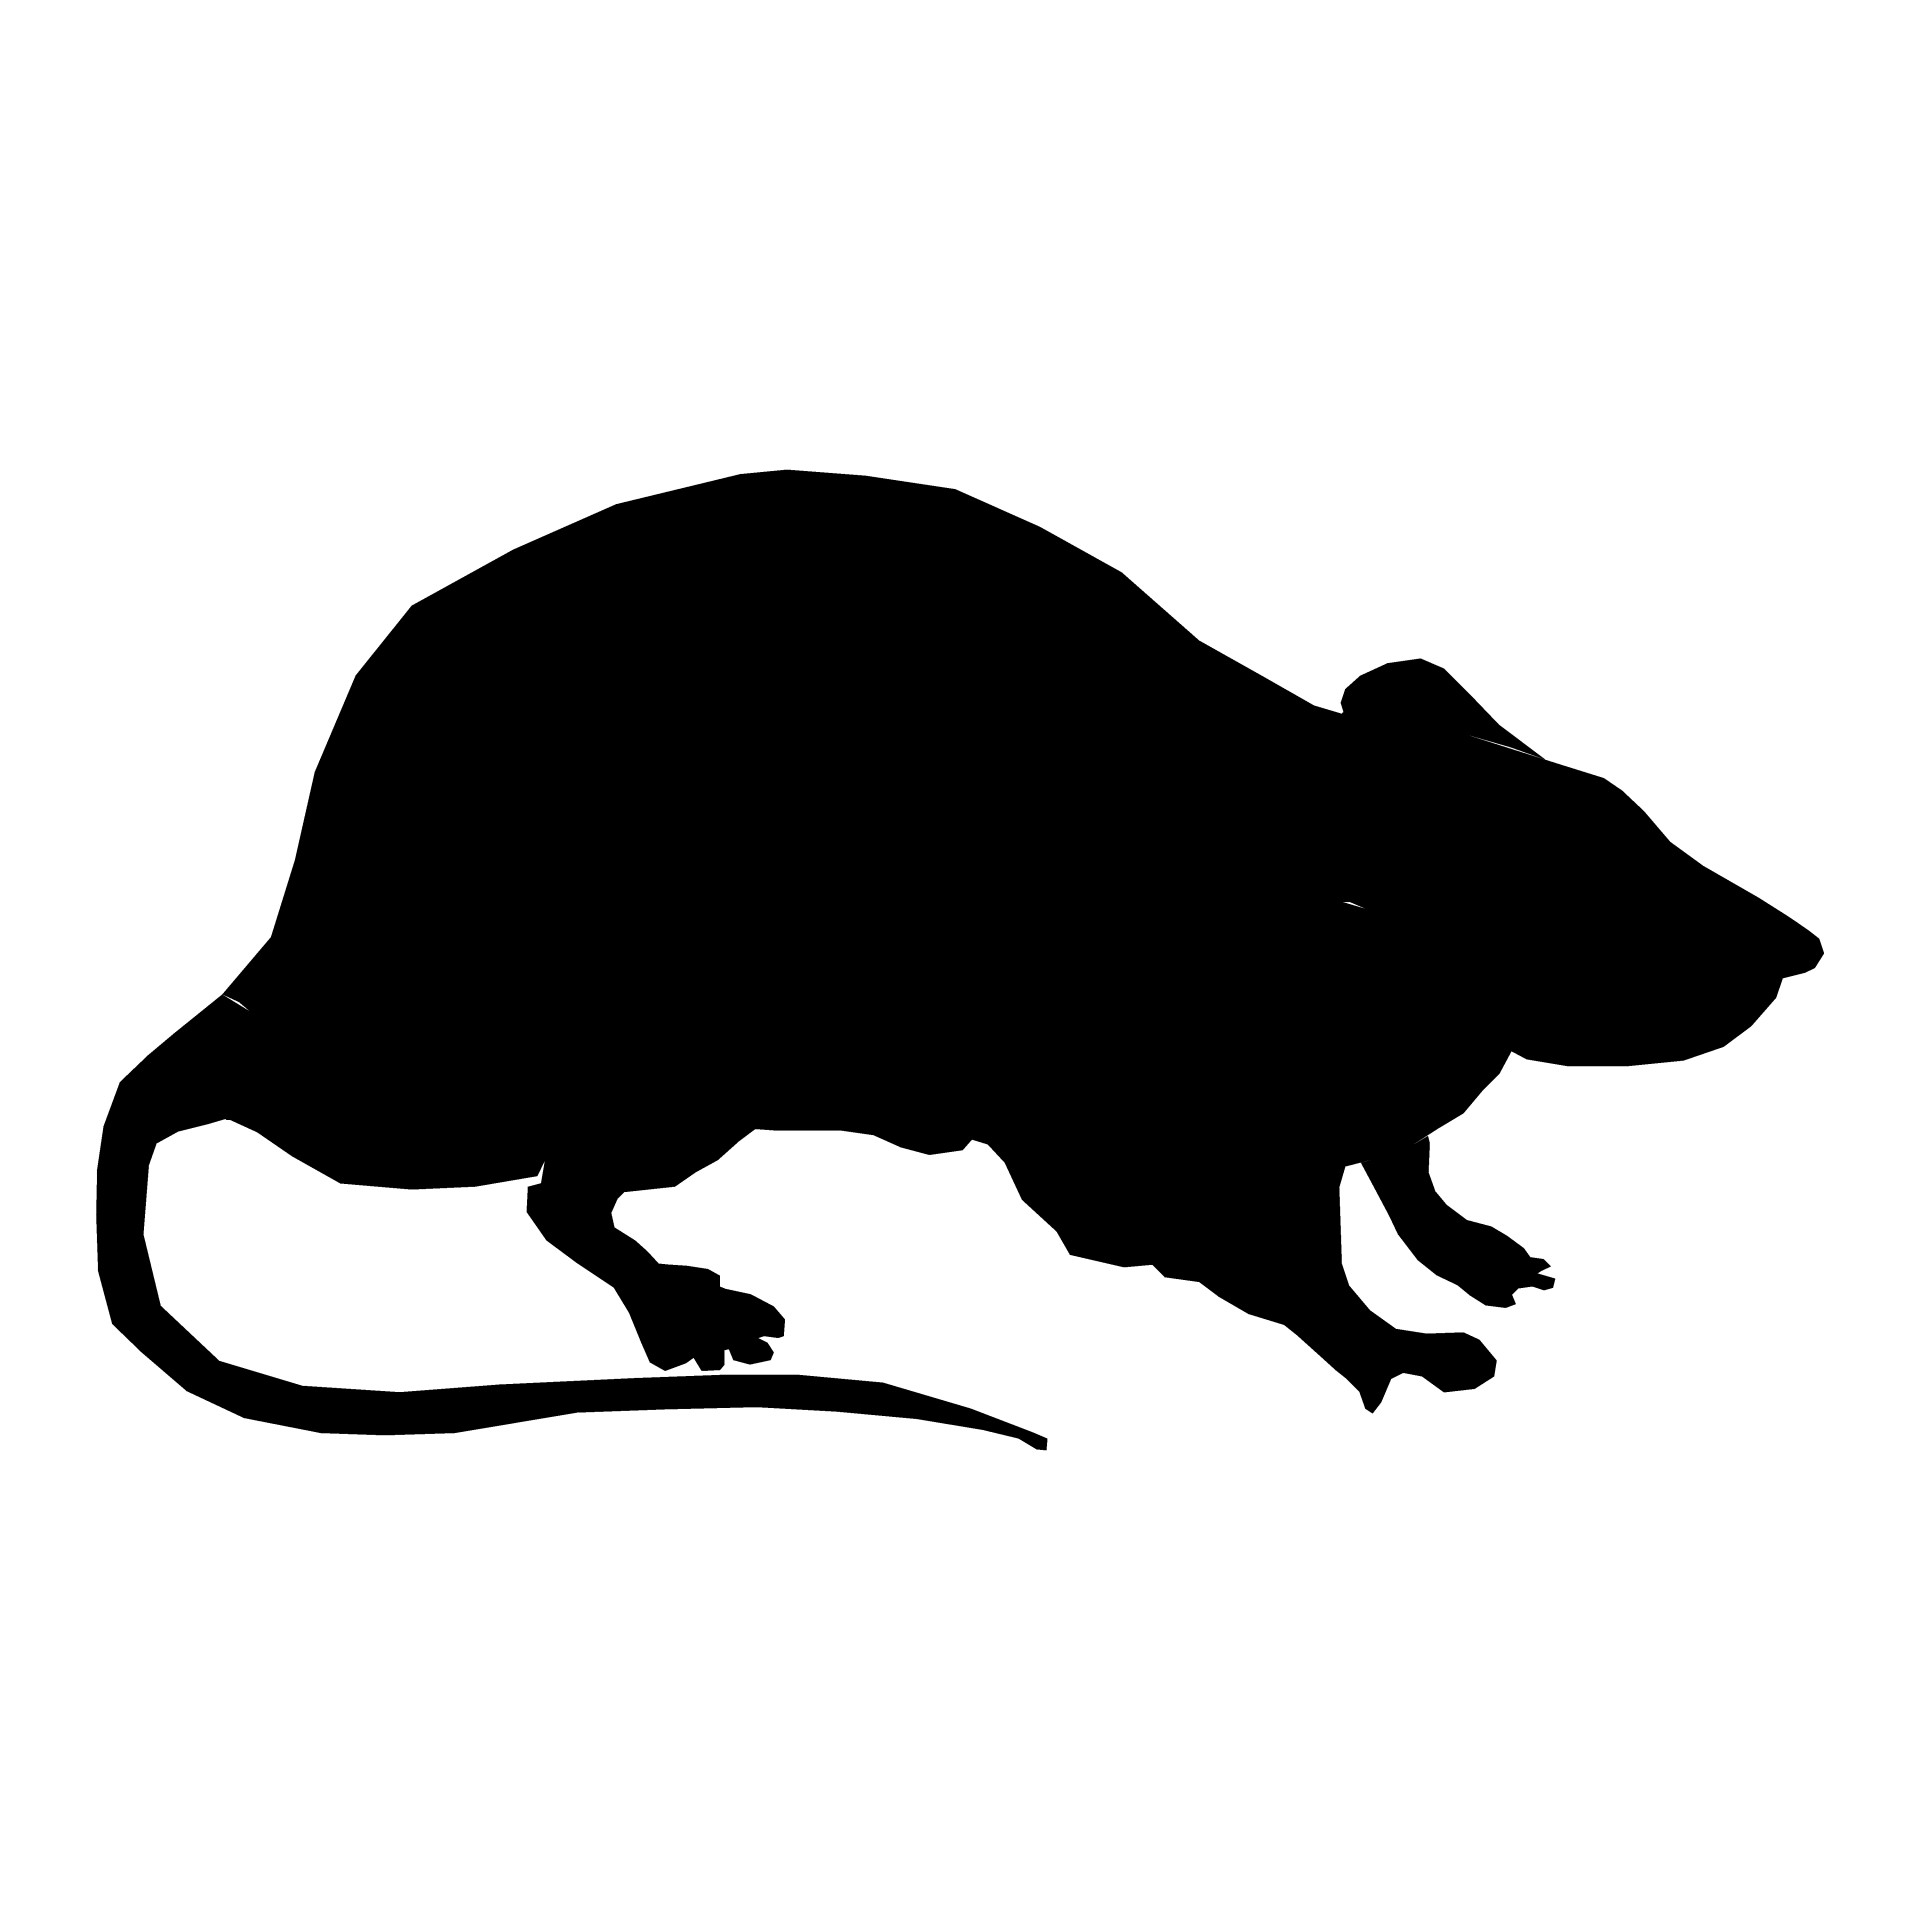 1920x1920 Silhouette Rat Free Stock Photo